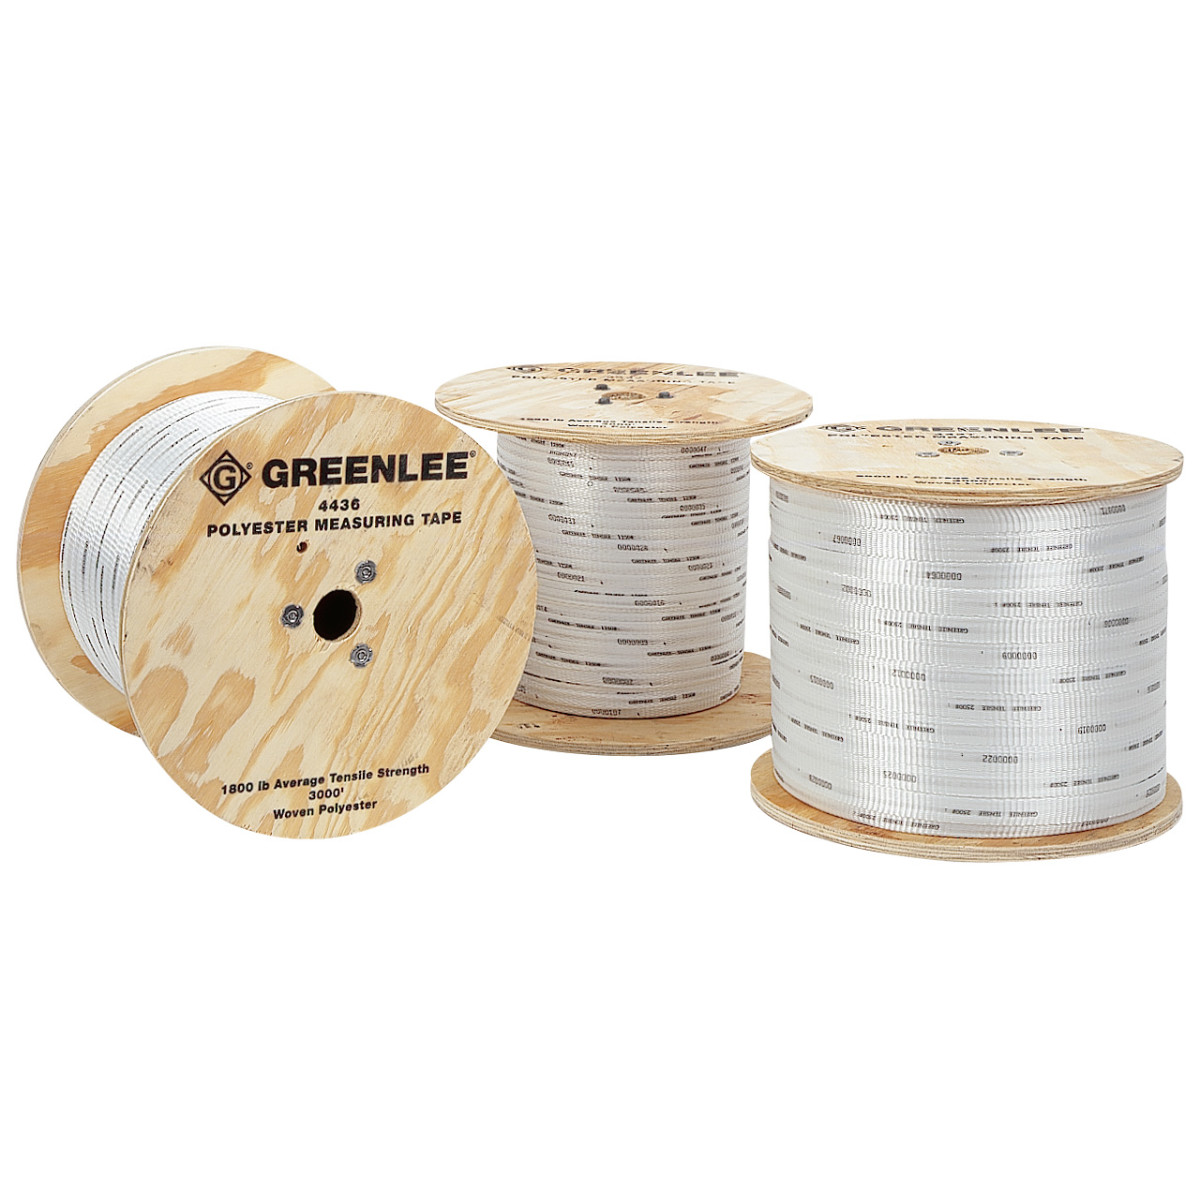 "Greenlee 4437 Tape Measuring-2500# Polyester, 3/4"", 3000'"